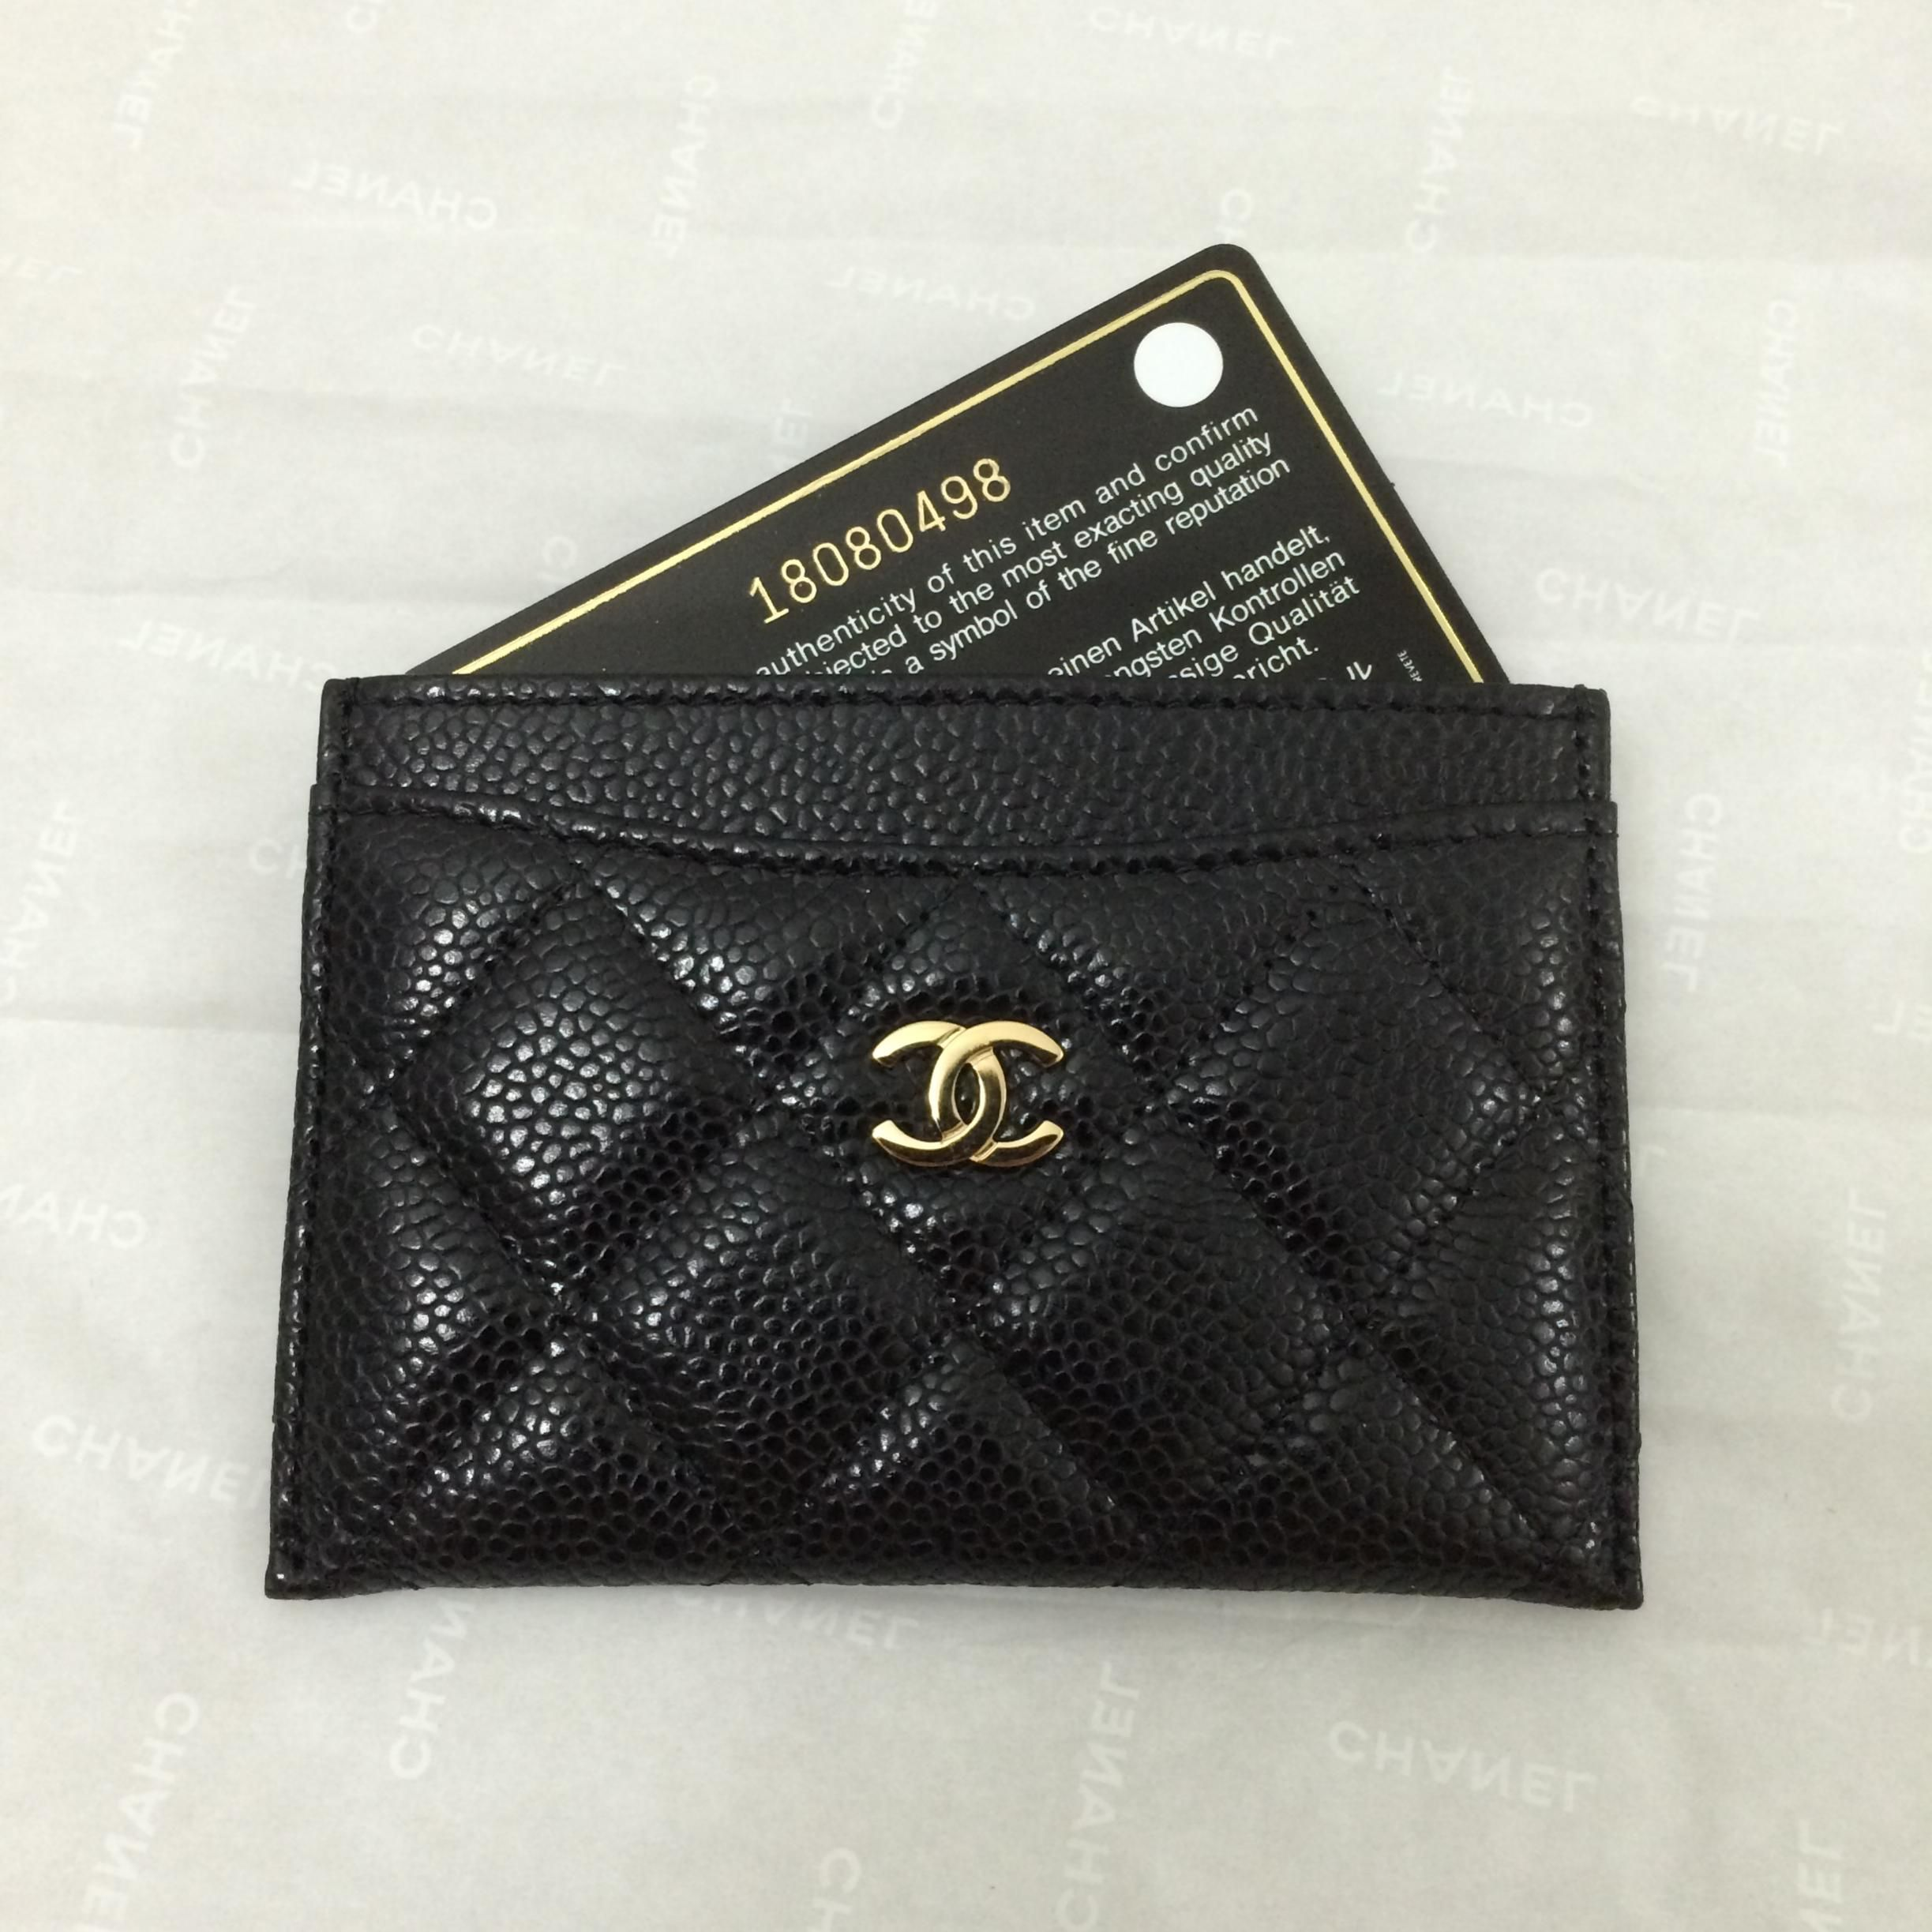 11585892f678 Chanel card holder Chanel Card Holder, Luxury Handbags, Fashion Handbags, Fashion  Bags,